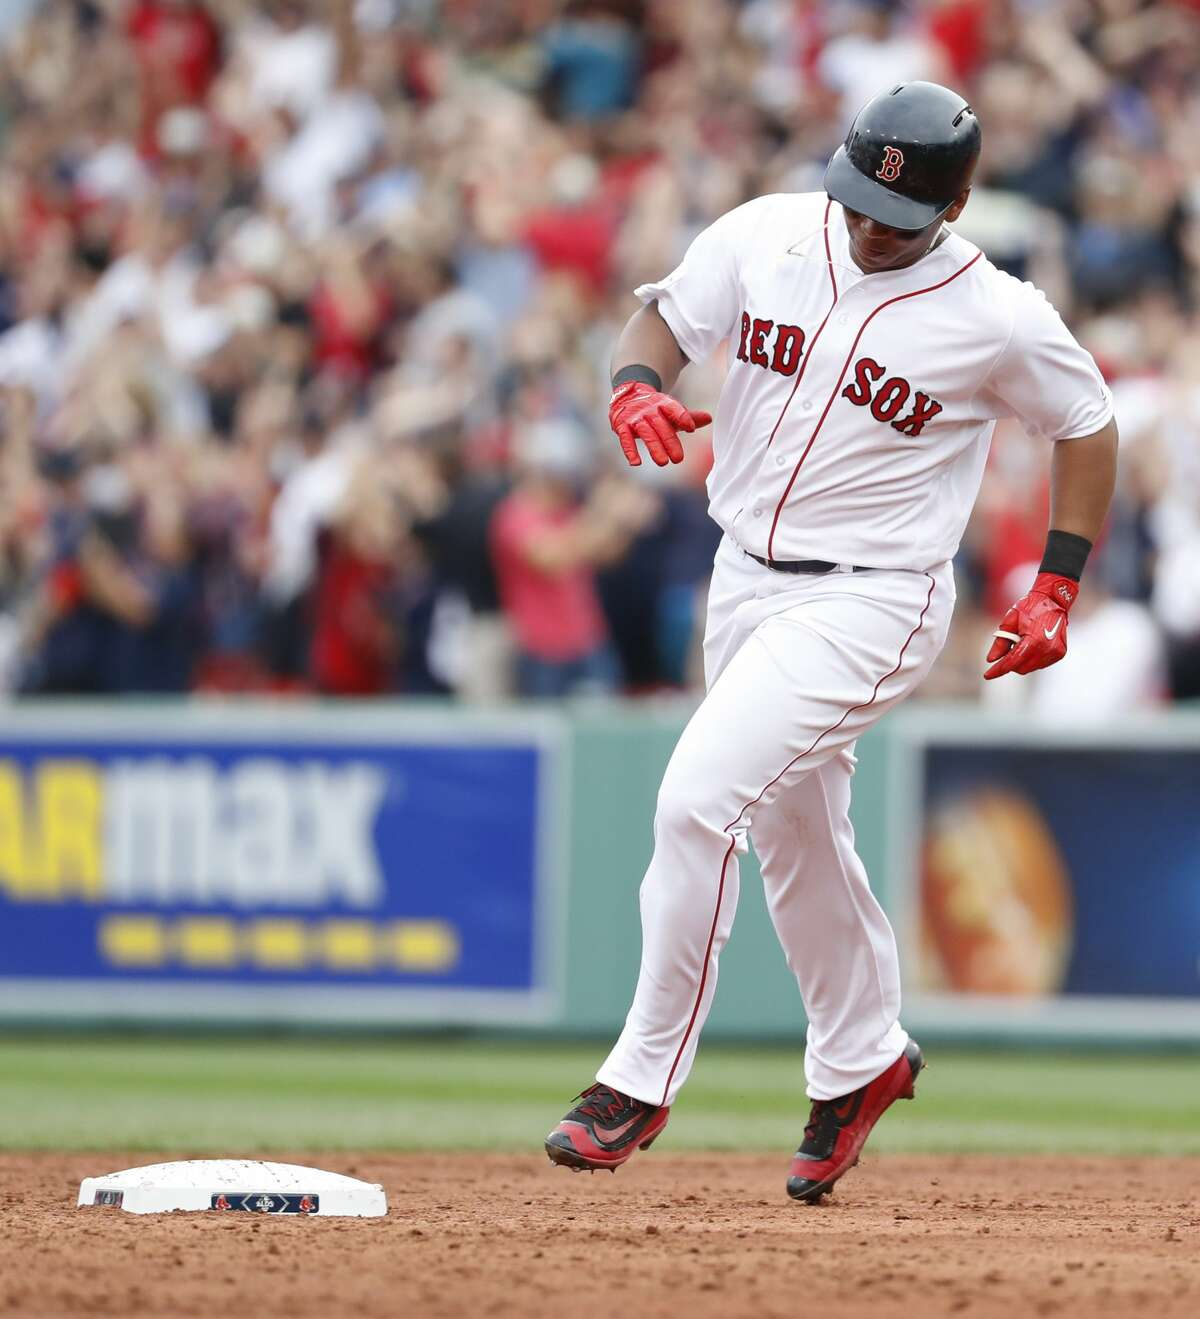 Boston Red Sox Rafael Devers runs the bases after his home run off of Astros relief pitcher Francisco Liriano during the third inning of the ALDS Game 3 at Fenway Park, Sunday, Oct. 8, 2017, in Boston . ( Karen Warren / Houston Chronicle )